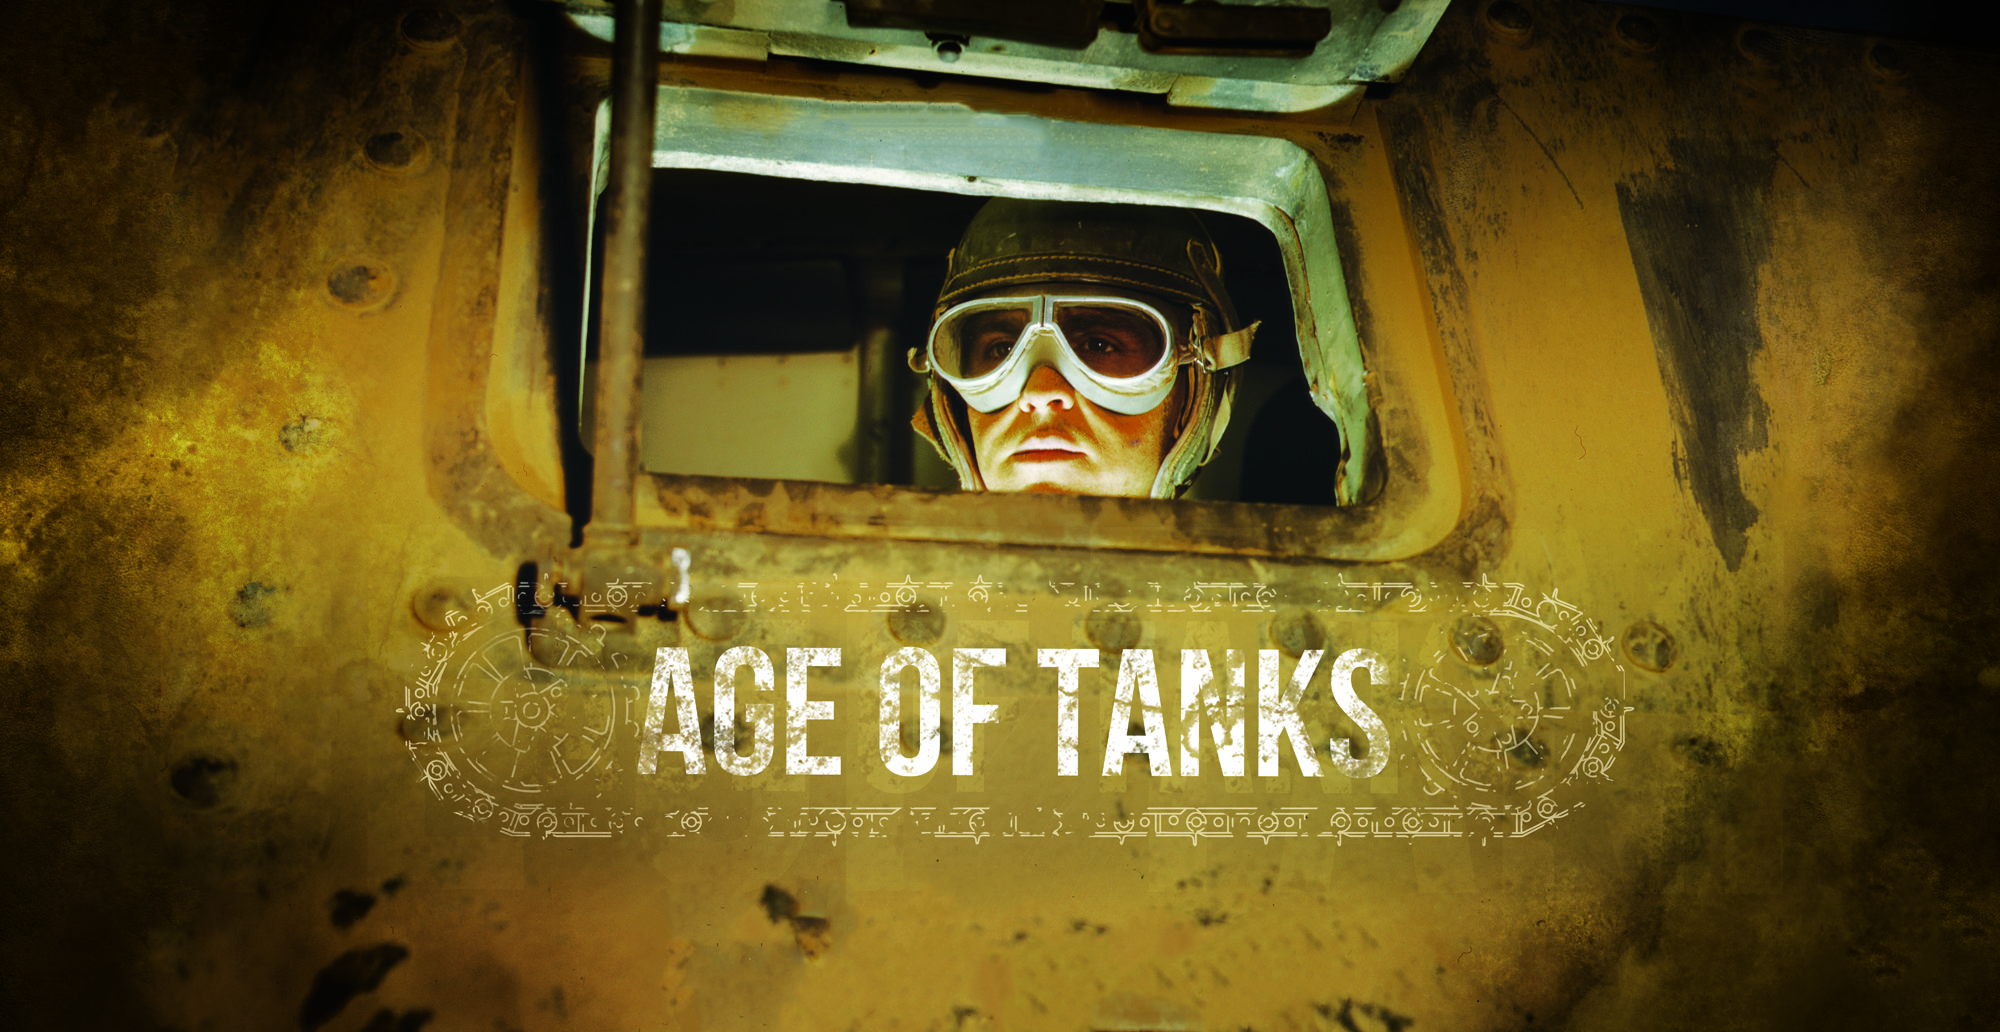 Age of Tanks Netflix